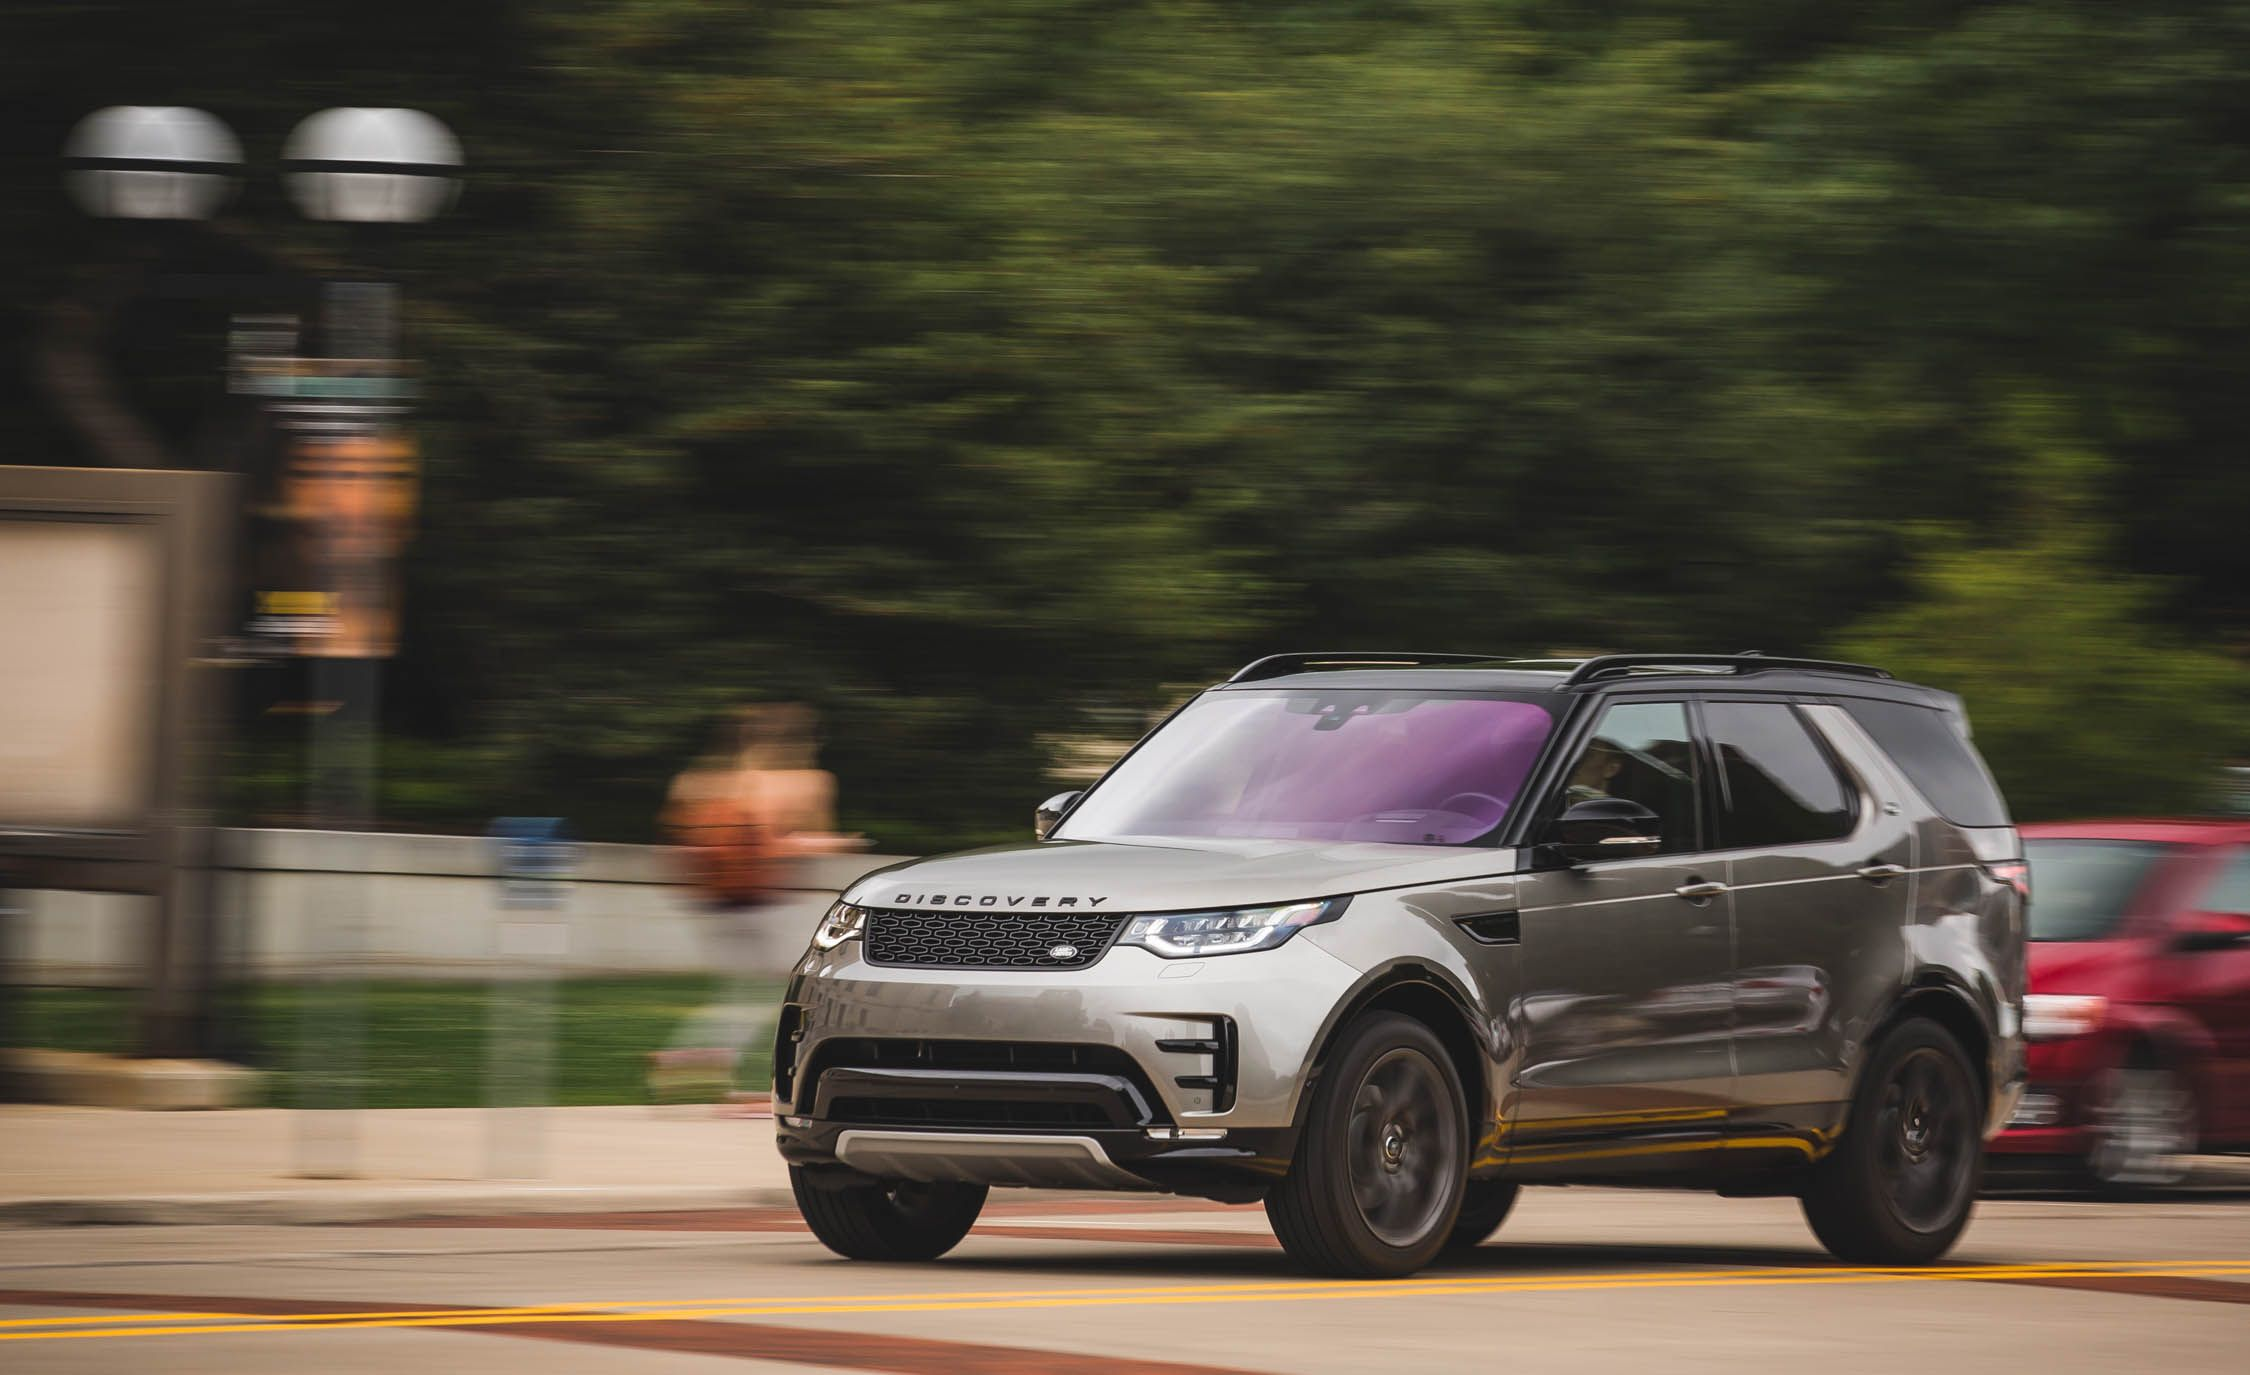 Land Rover Discovery Reviews | Land Rover Discovery Price, Photos, and  Specs | Car and Driver